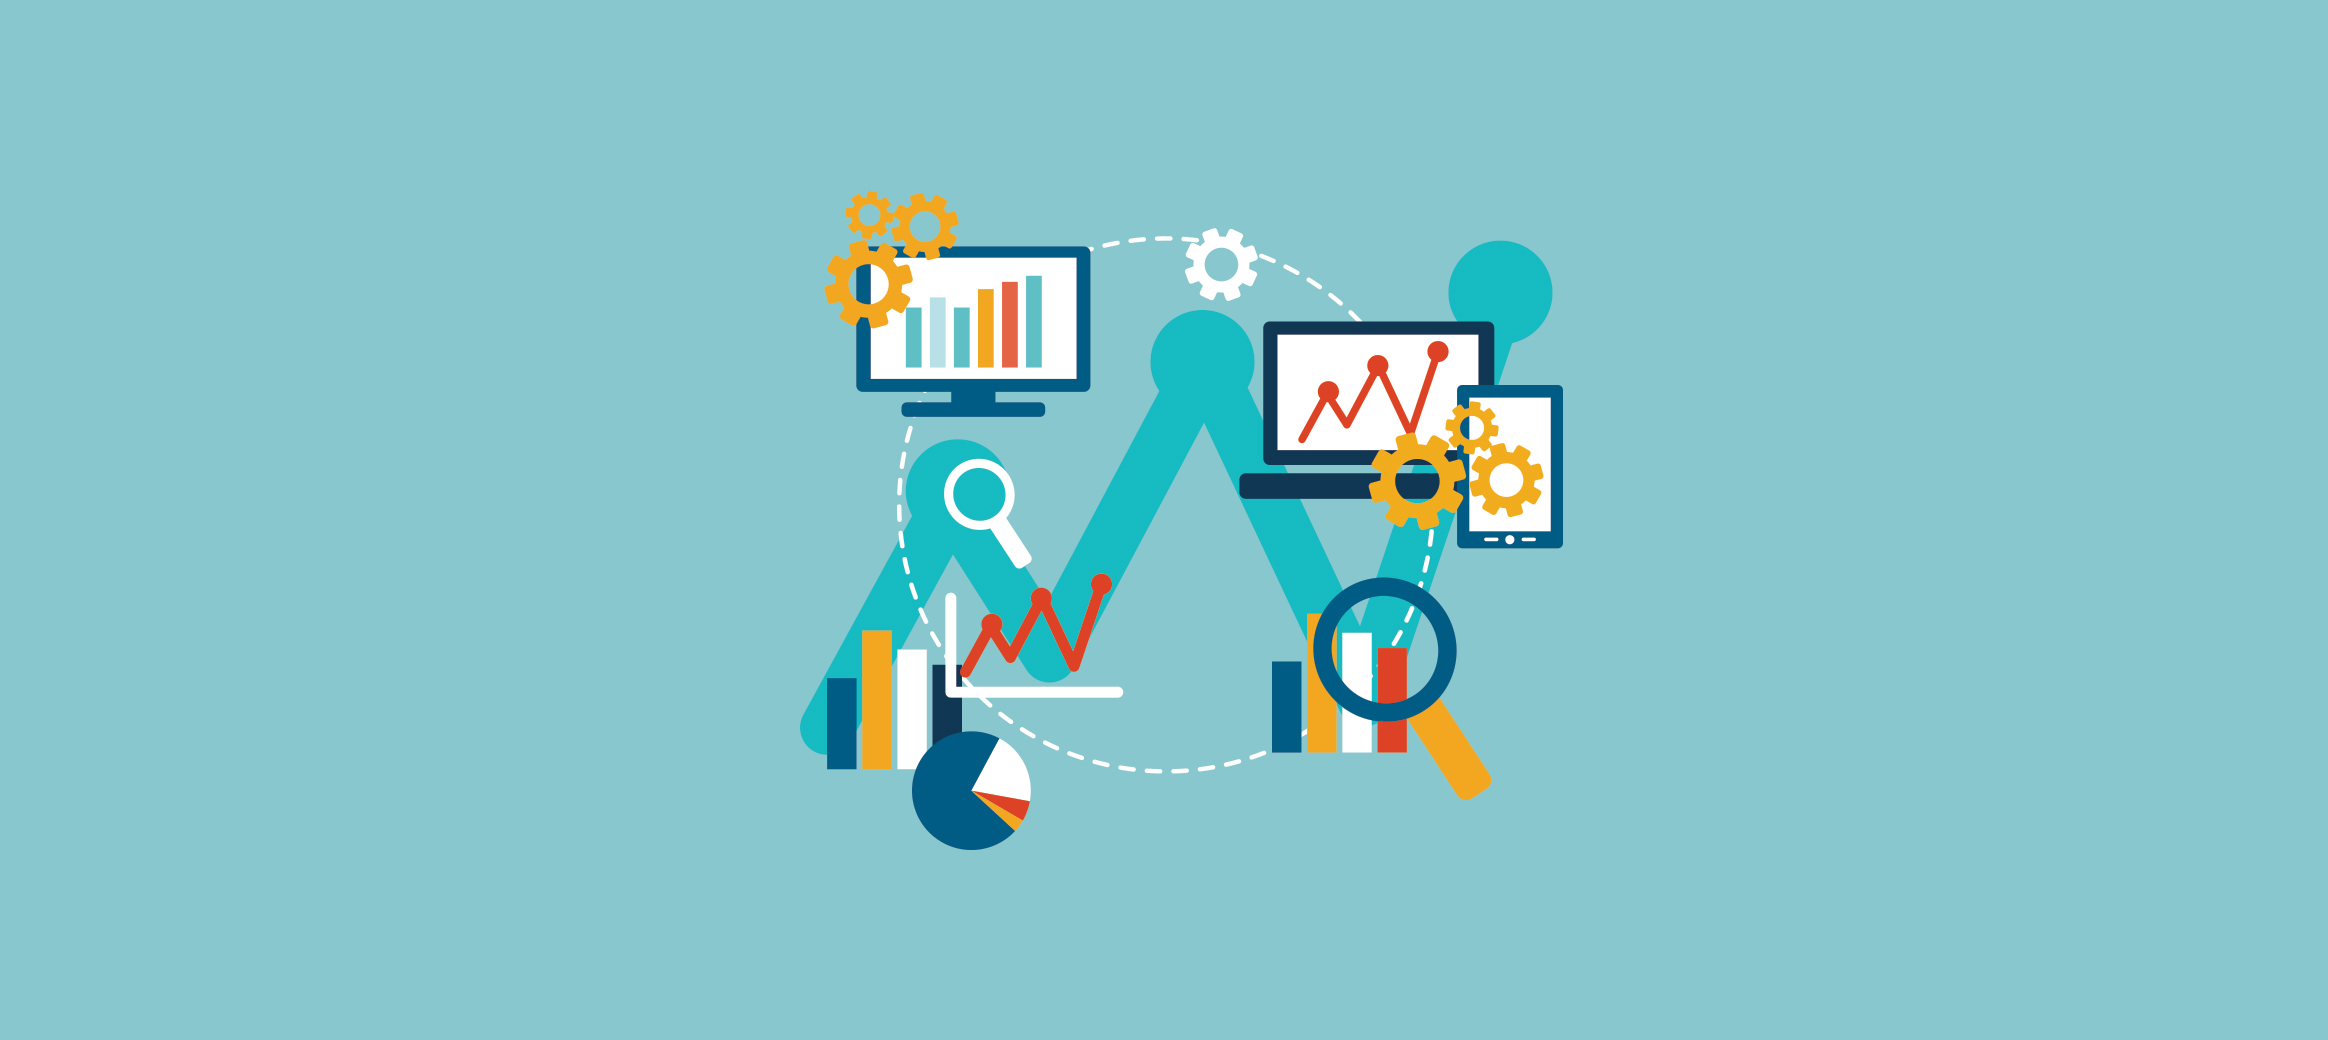 Procurement Analytics Market 2026 highlights, key insights, growth prospects and future opportunities